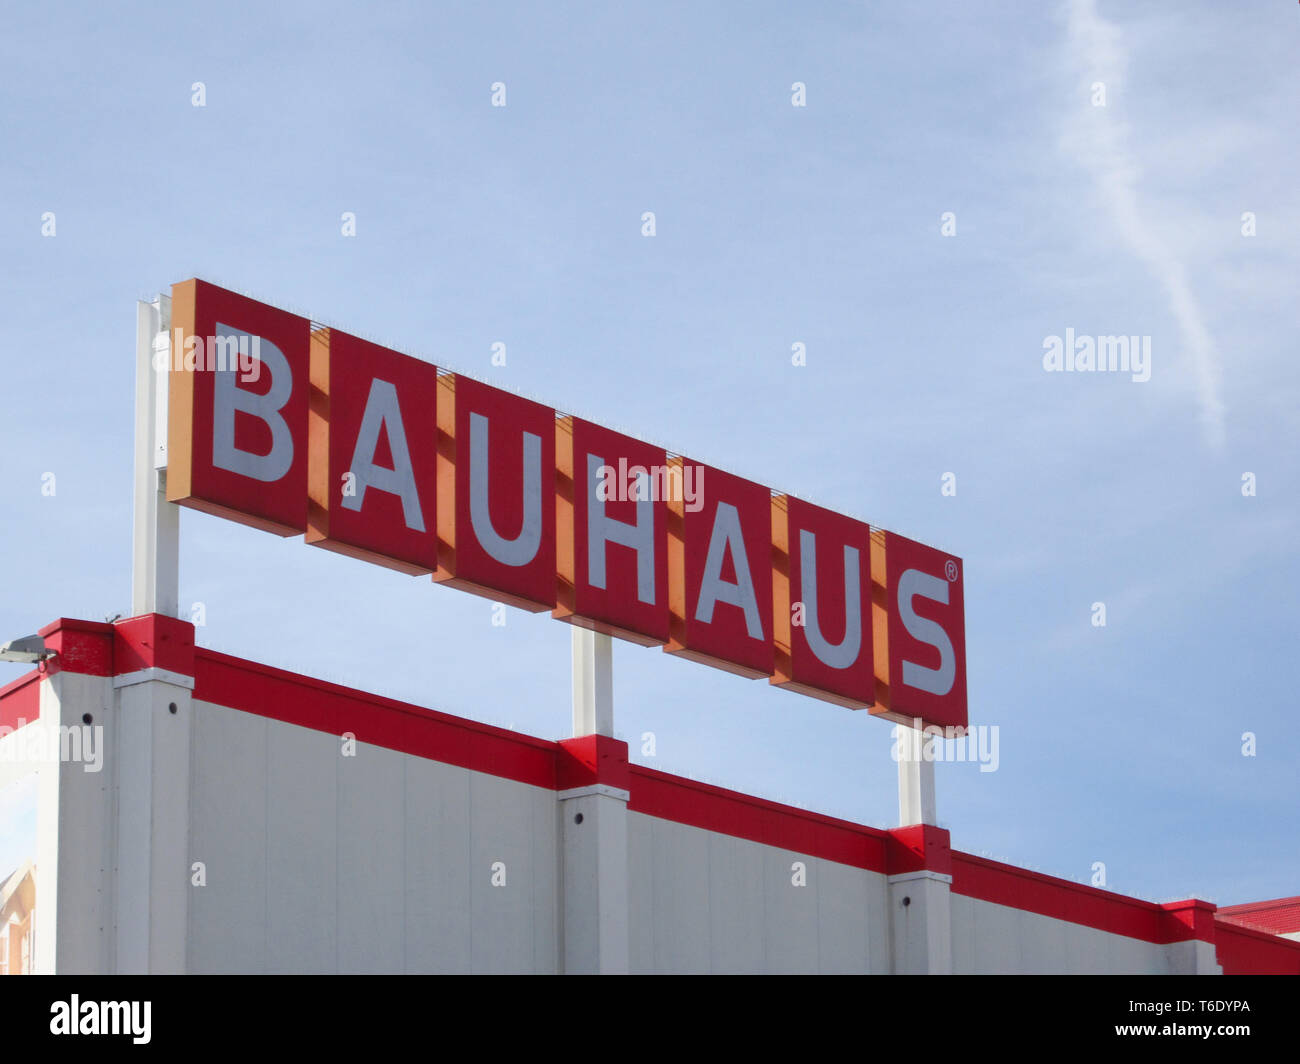 LJUBLJANA, SLOVENIA - MARCH 22 2019: Bauhaus is a retail chain offering products for home improvement, gardening an workshop Stock Photo